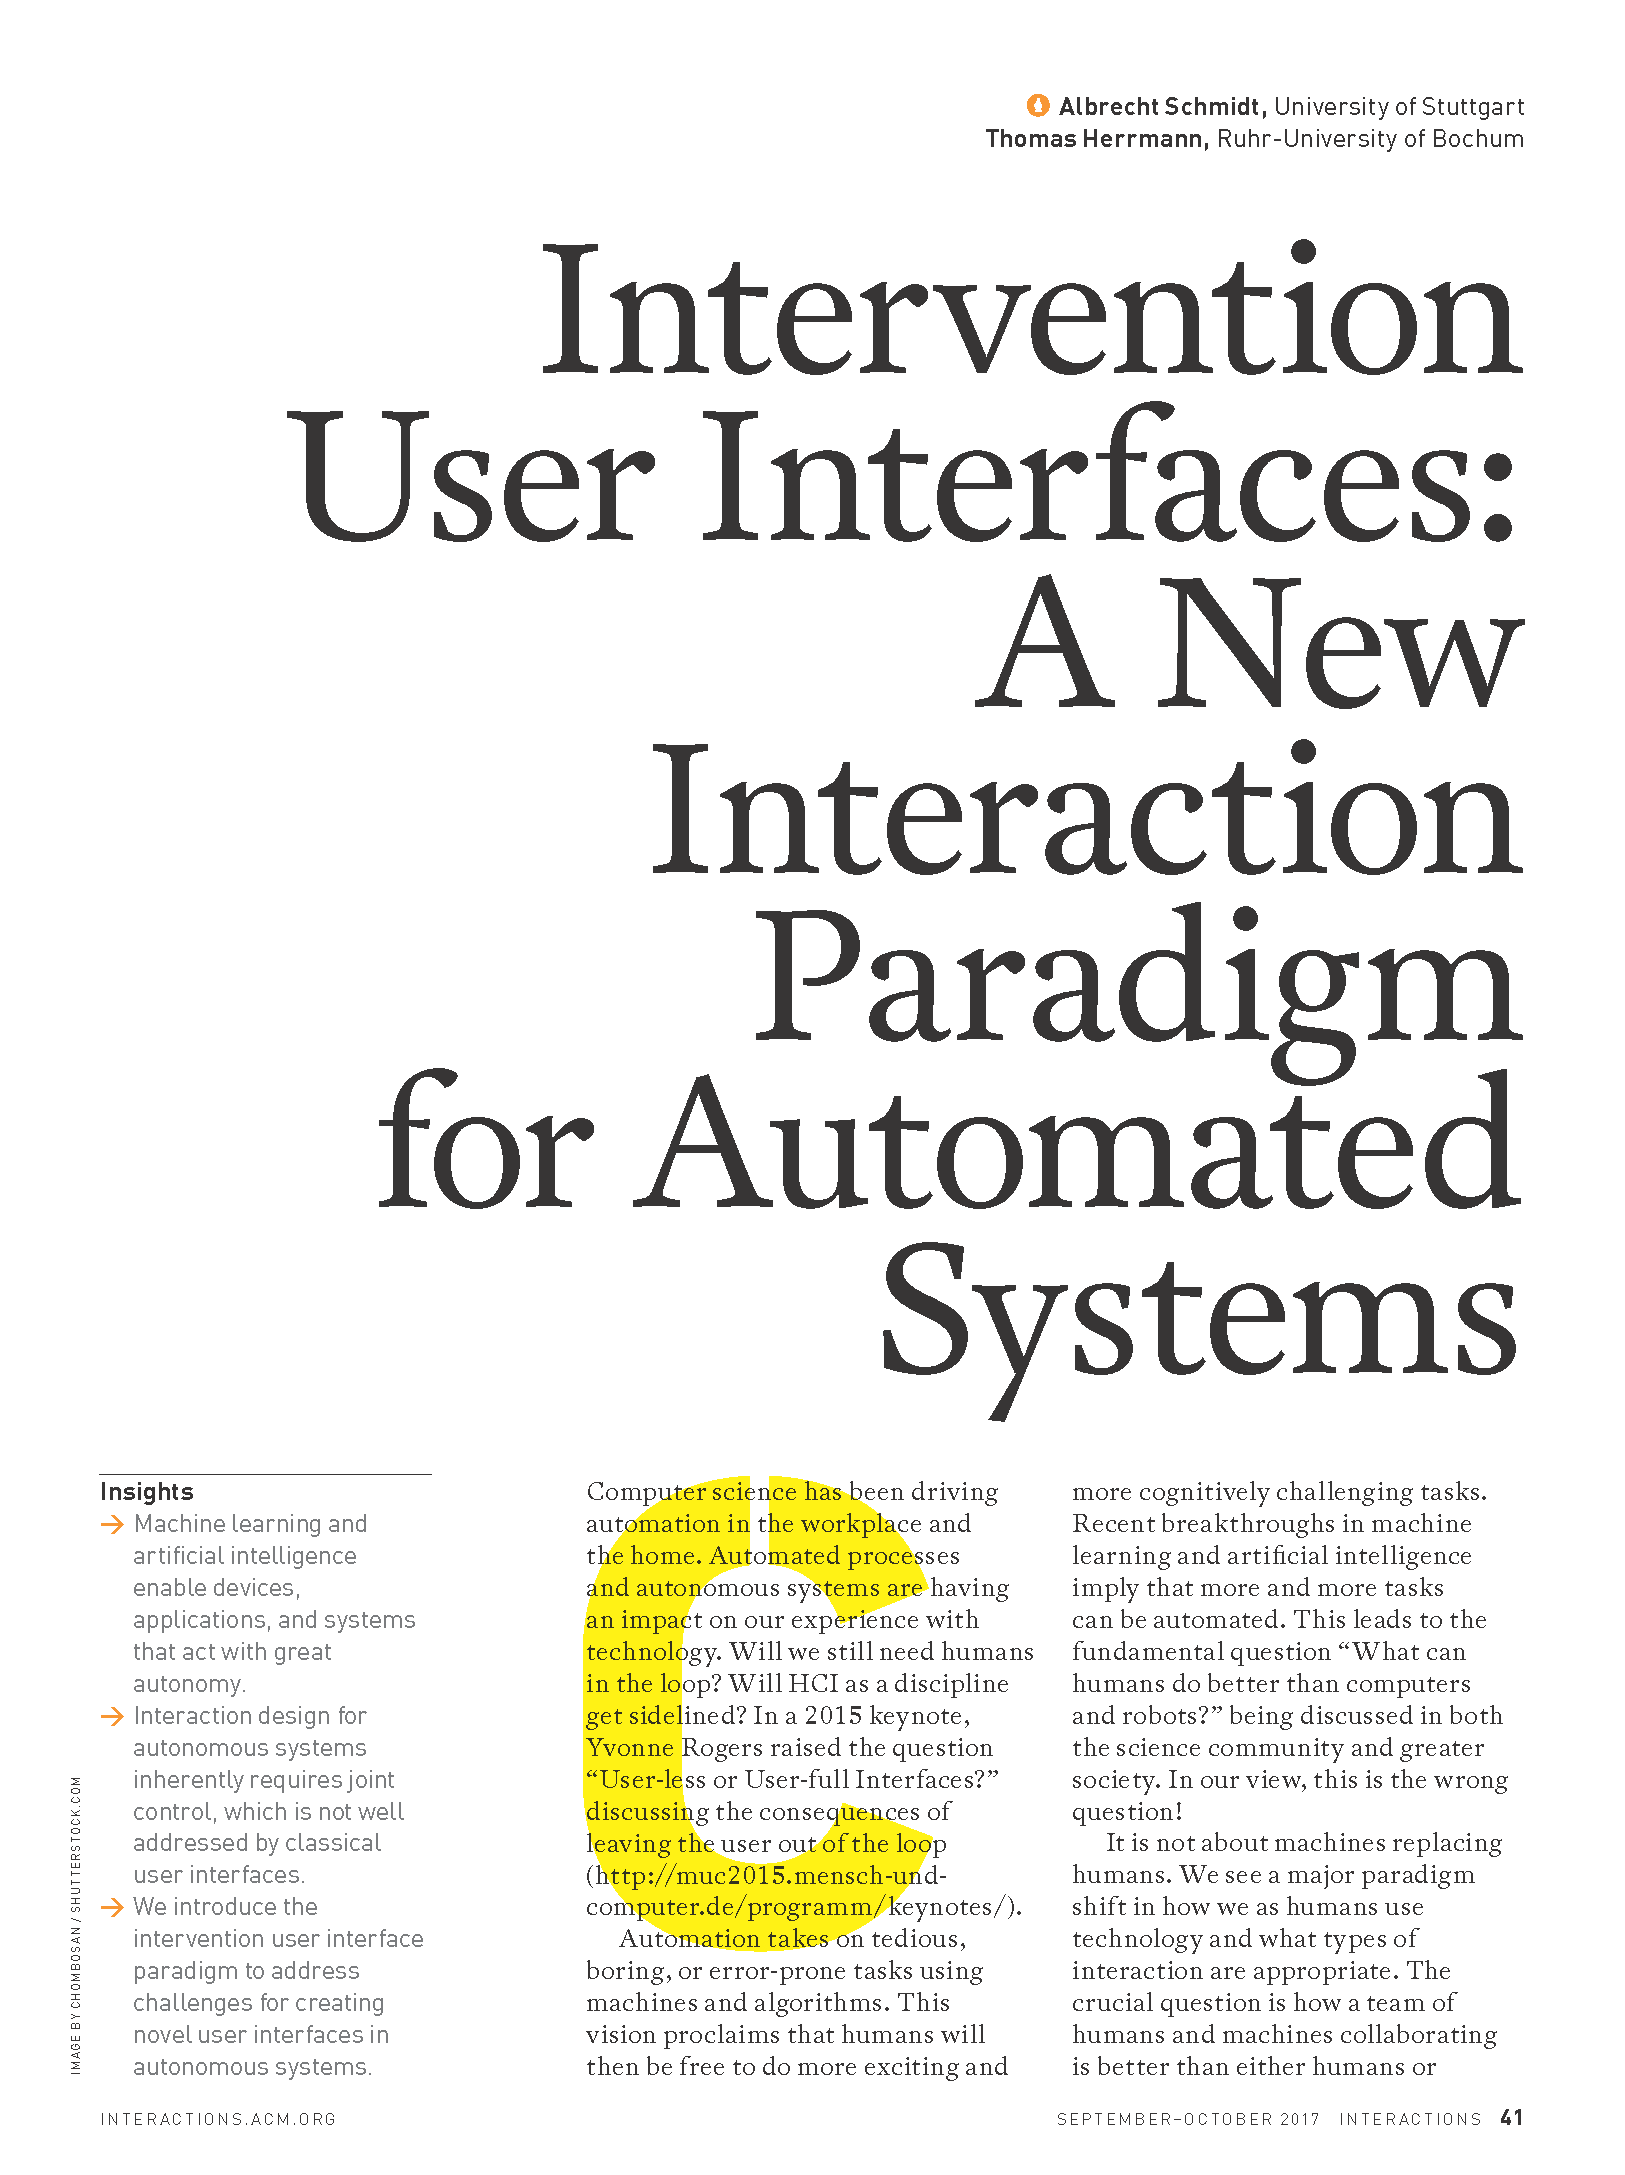 Intervention User Interfaces: A New Interaction Paradigm for Automated Systems